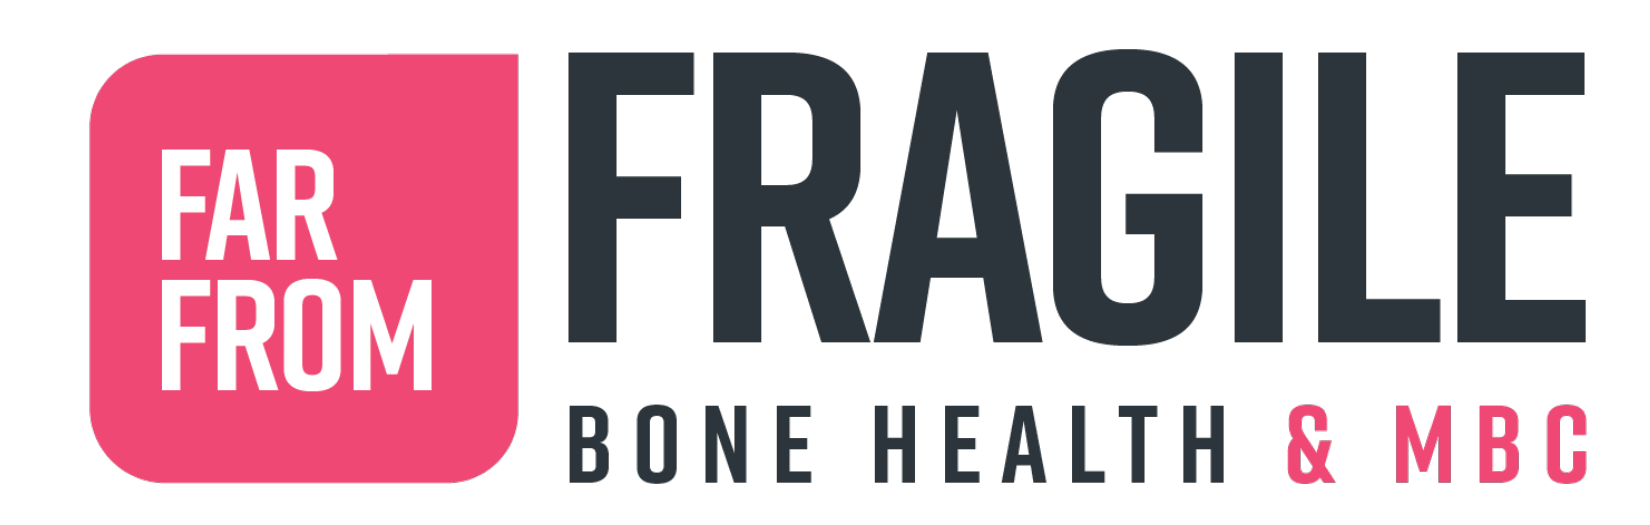 Bone Health and Breast Cancer